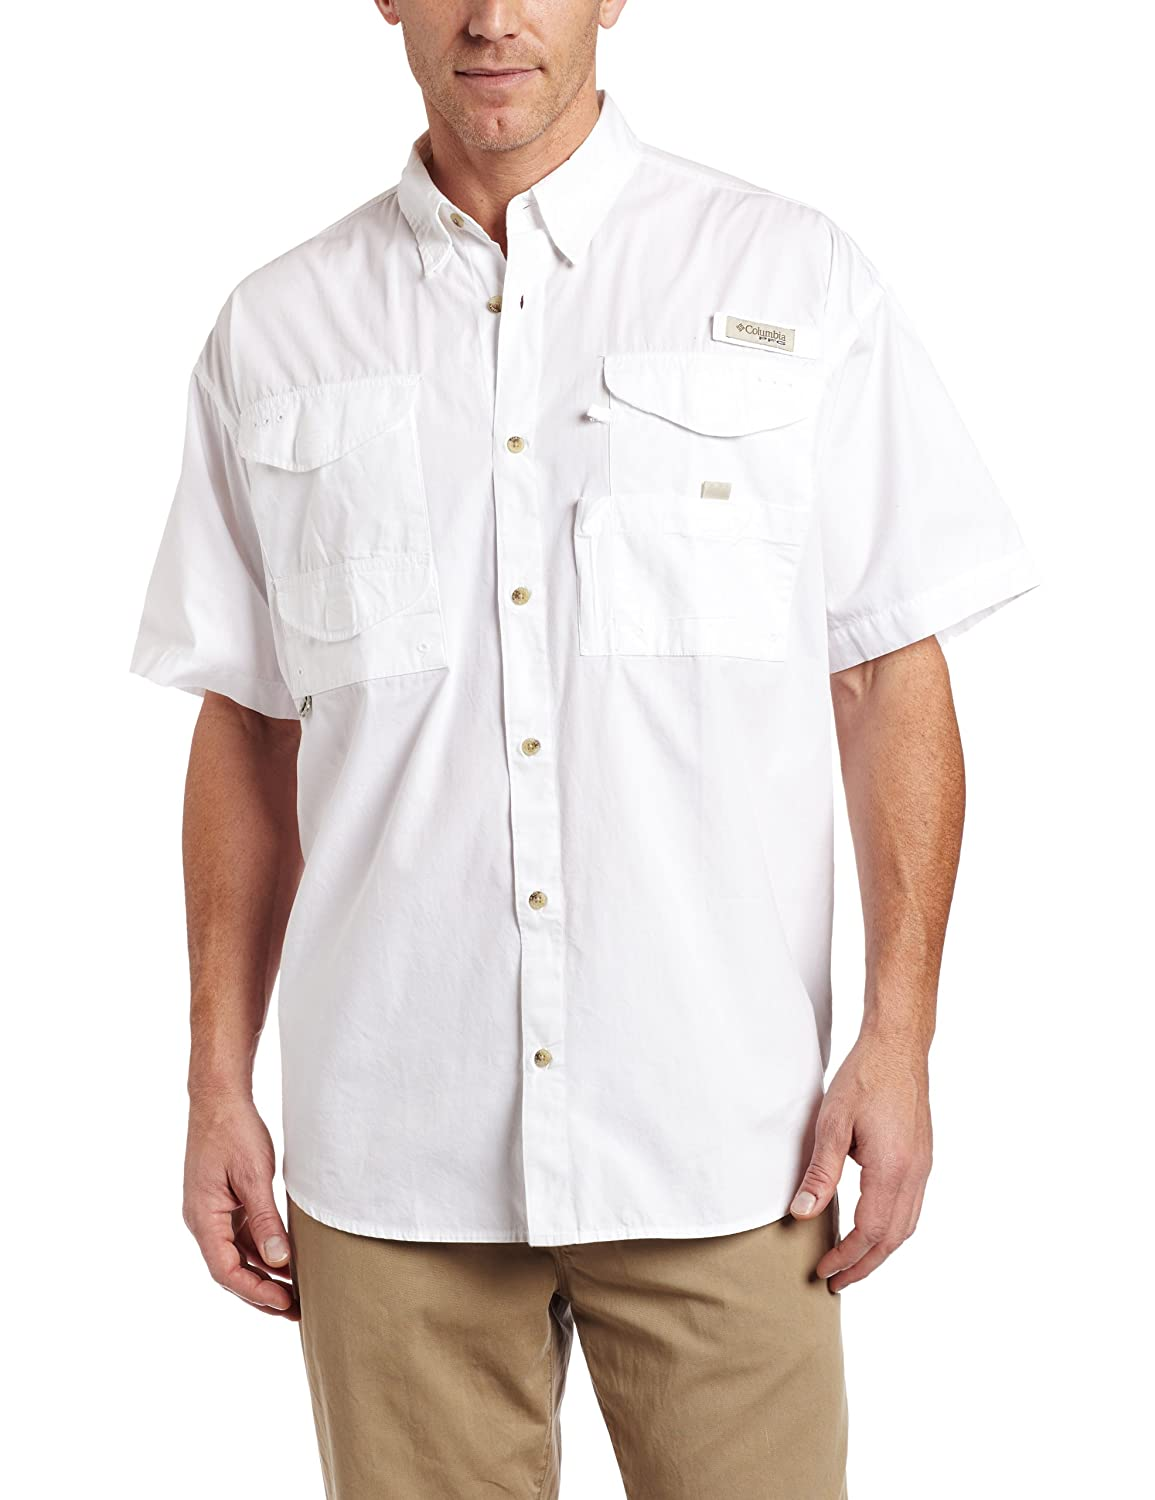 Columbia Men&#8217;s Bonehead Short Sleeve Shirt,White,X-Large $24.69